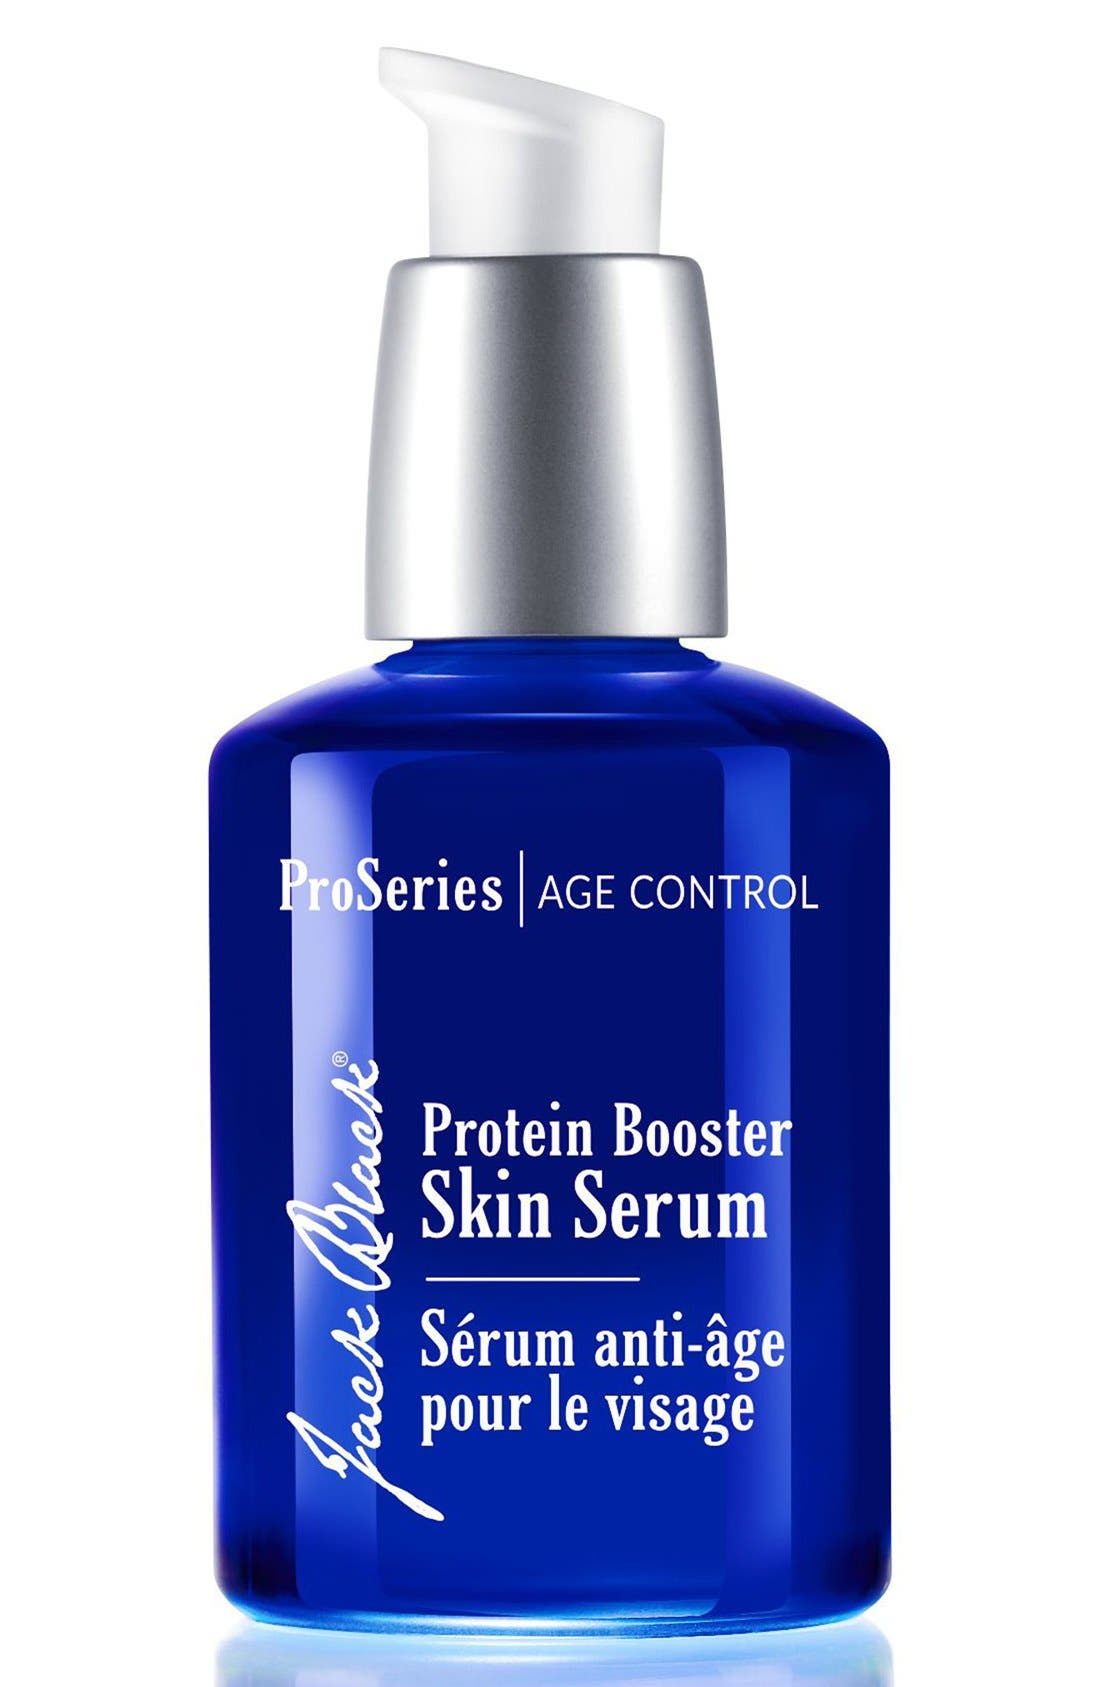 Jack Black Protein Booster Skin Serum